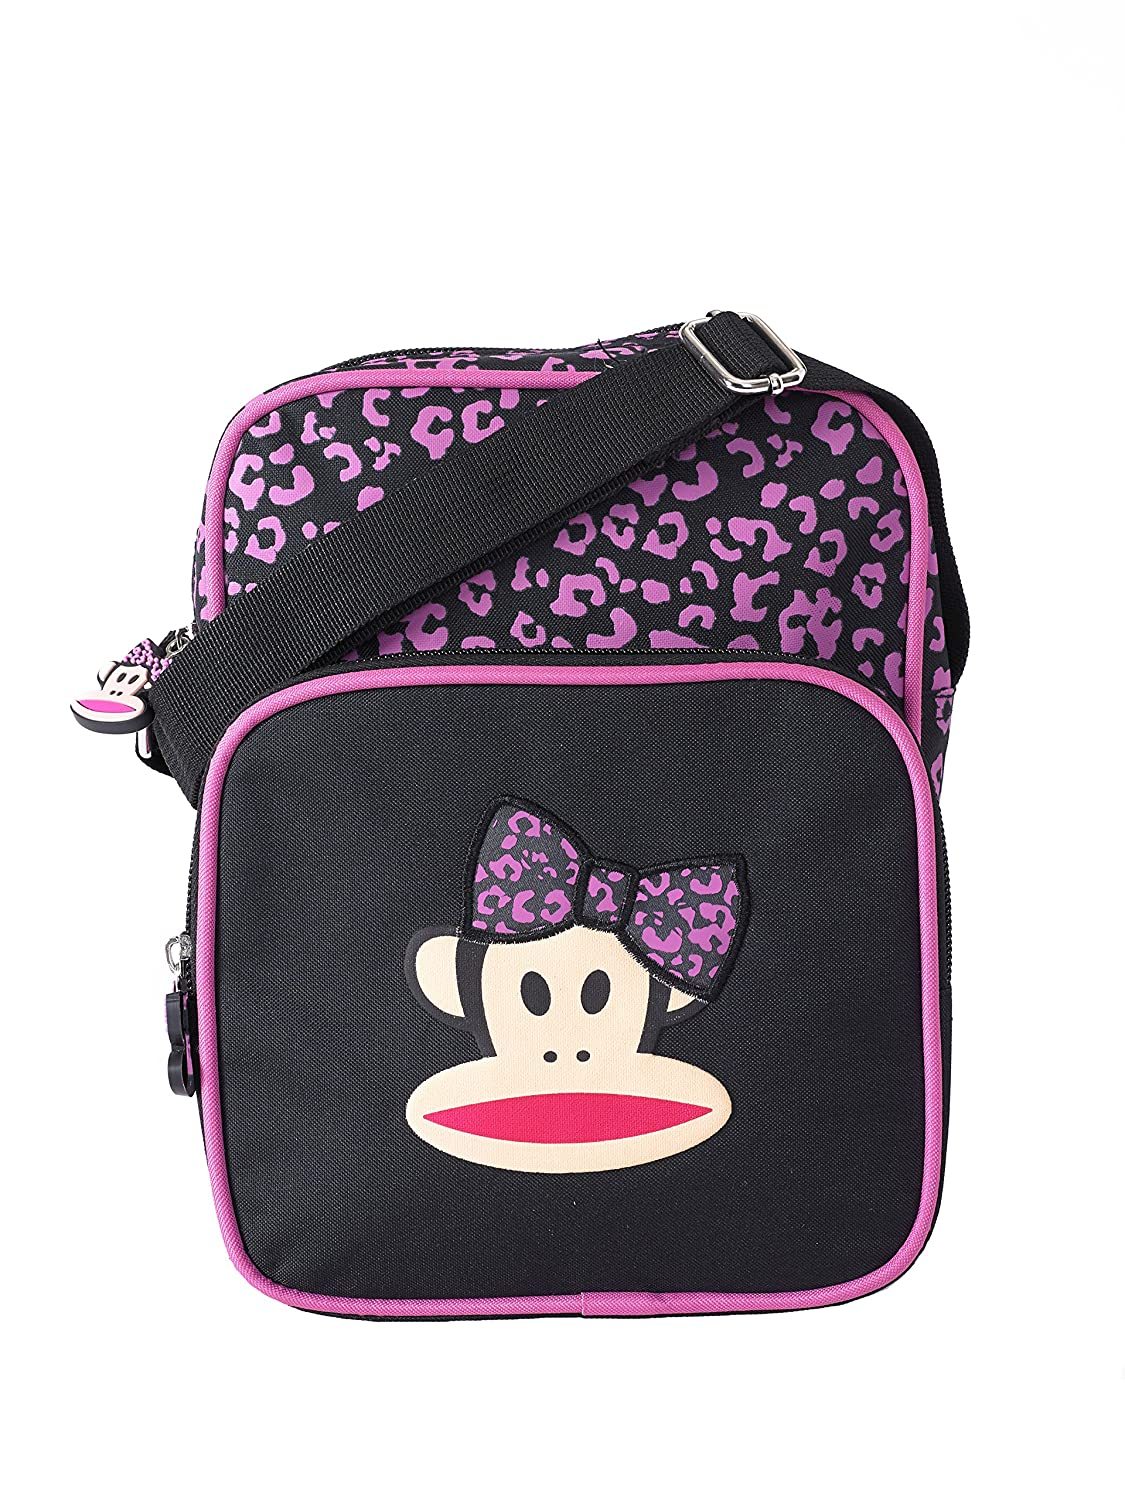 PAUL FRANK Bow Backpack and Pencil Case SET Pink/Black ...